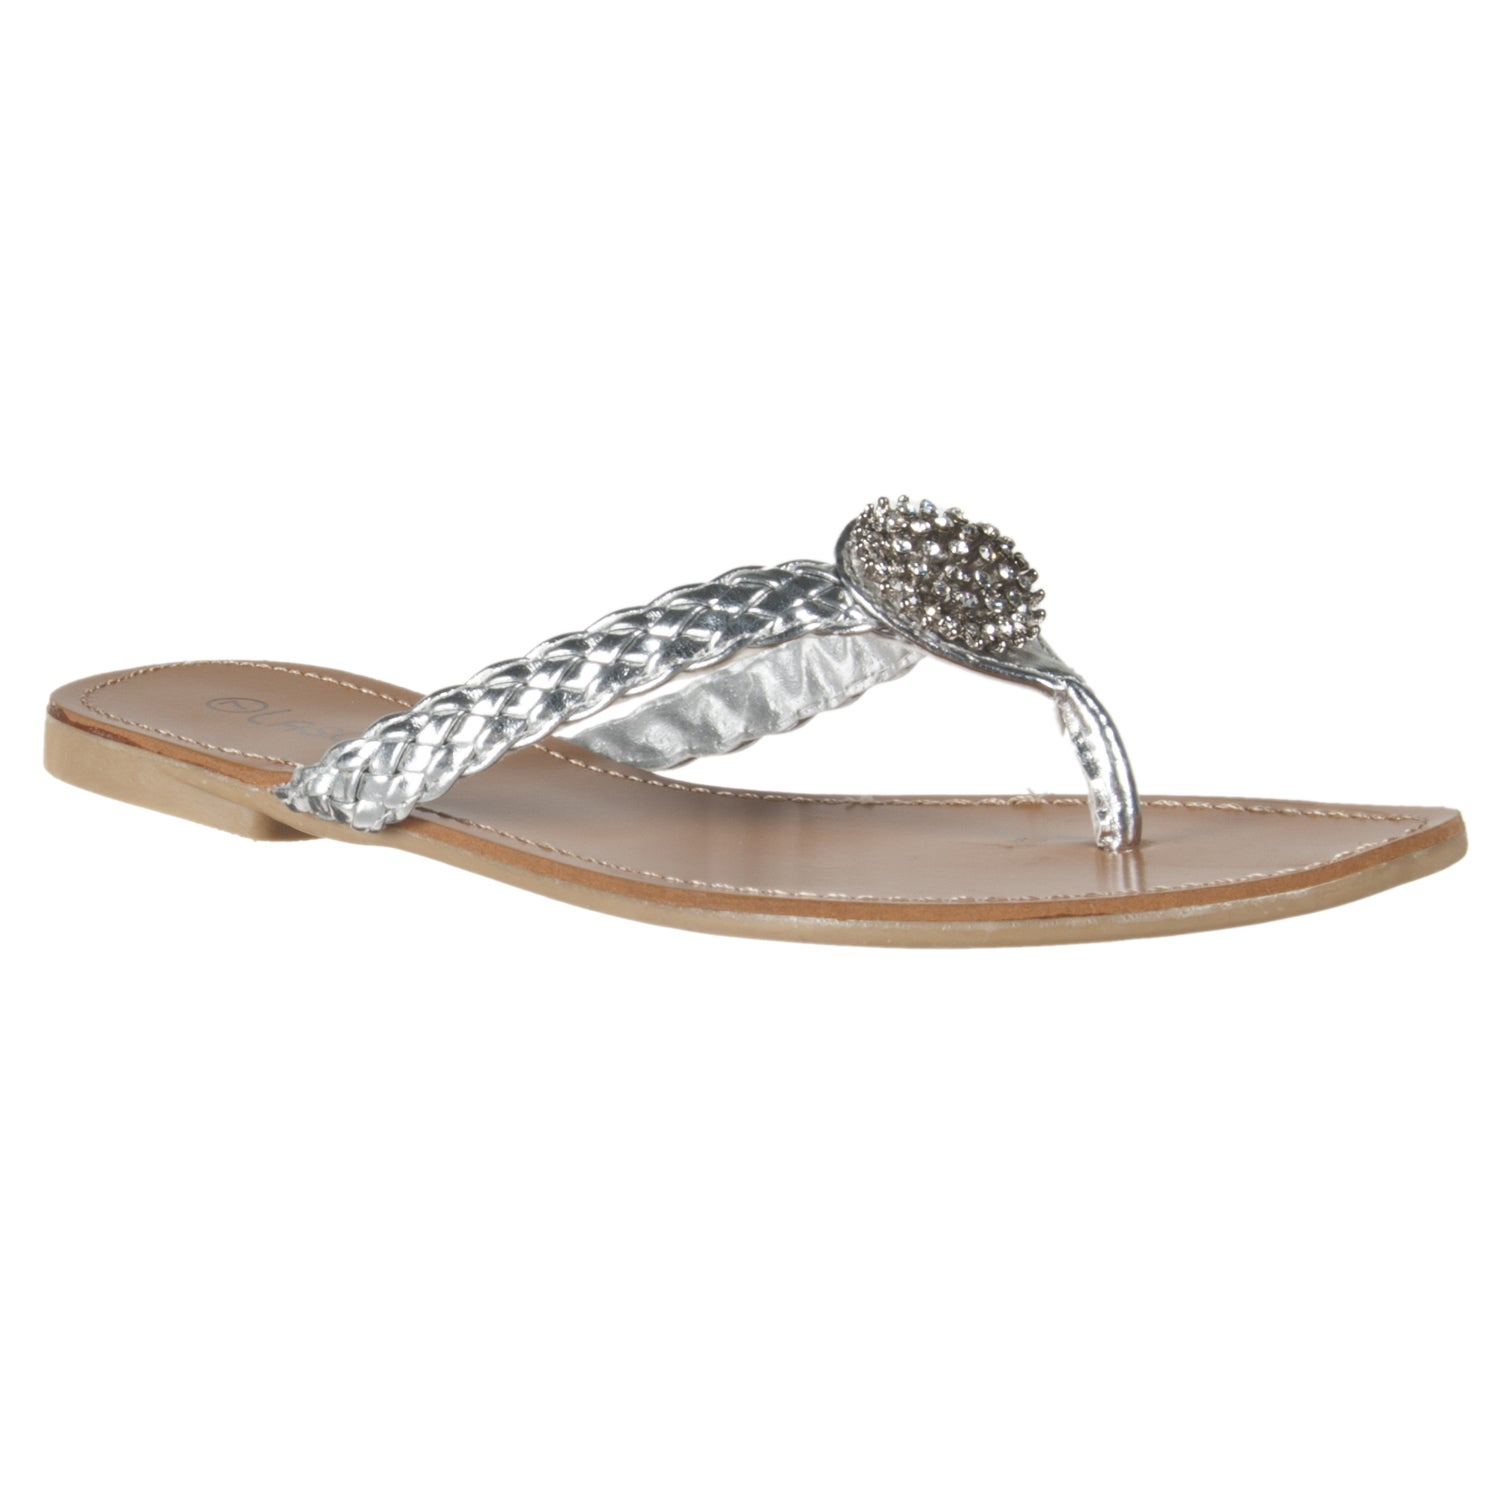 Riverberry Women's Silver Rhinestone Thongs